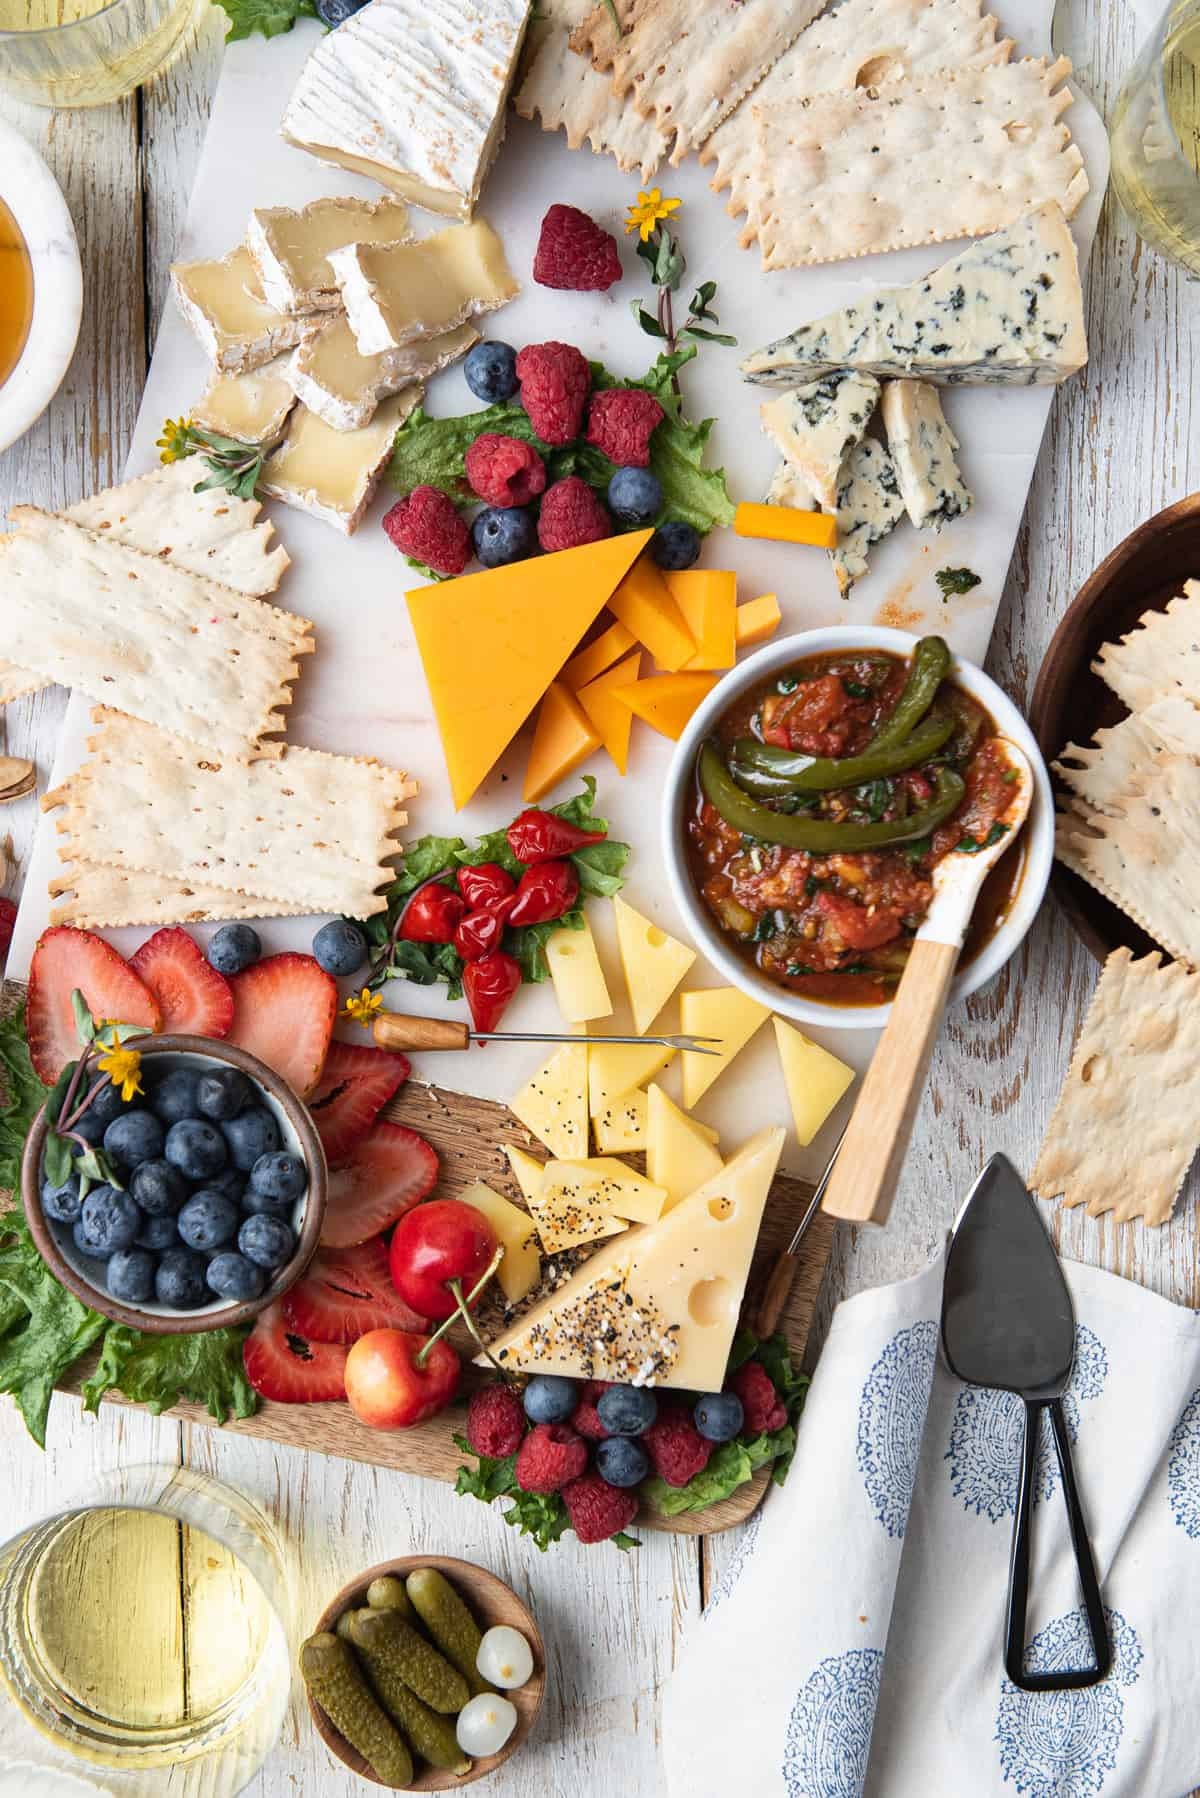 grazing board with cheese, crackers, fruit, and jalapeño jam with spoon